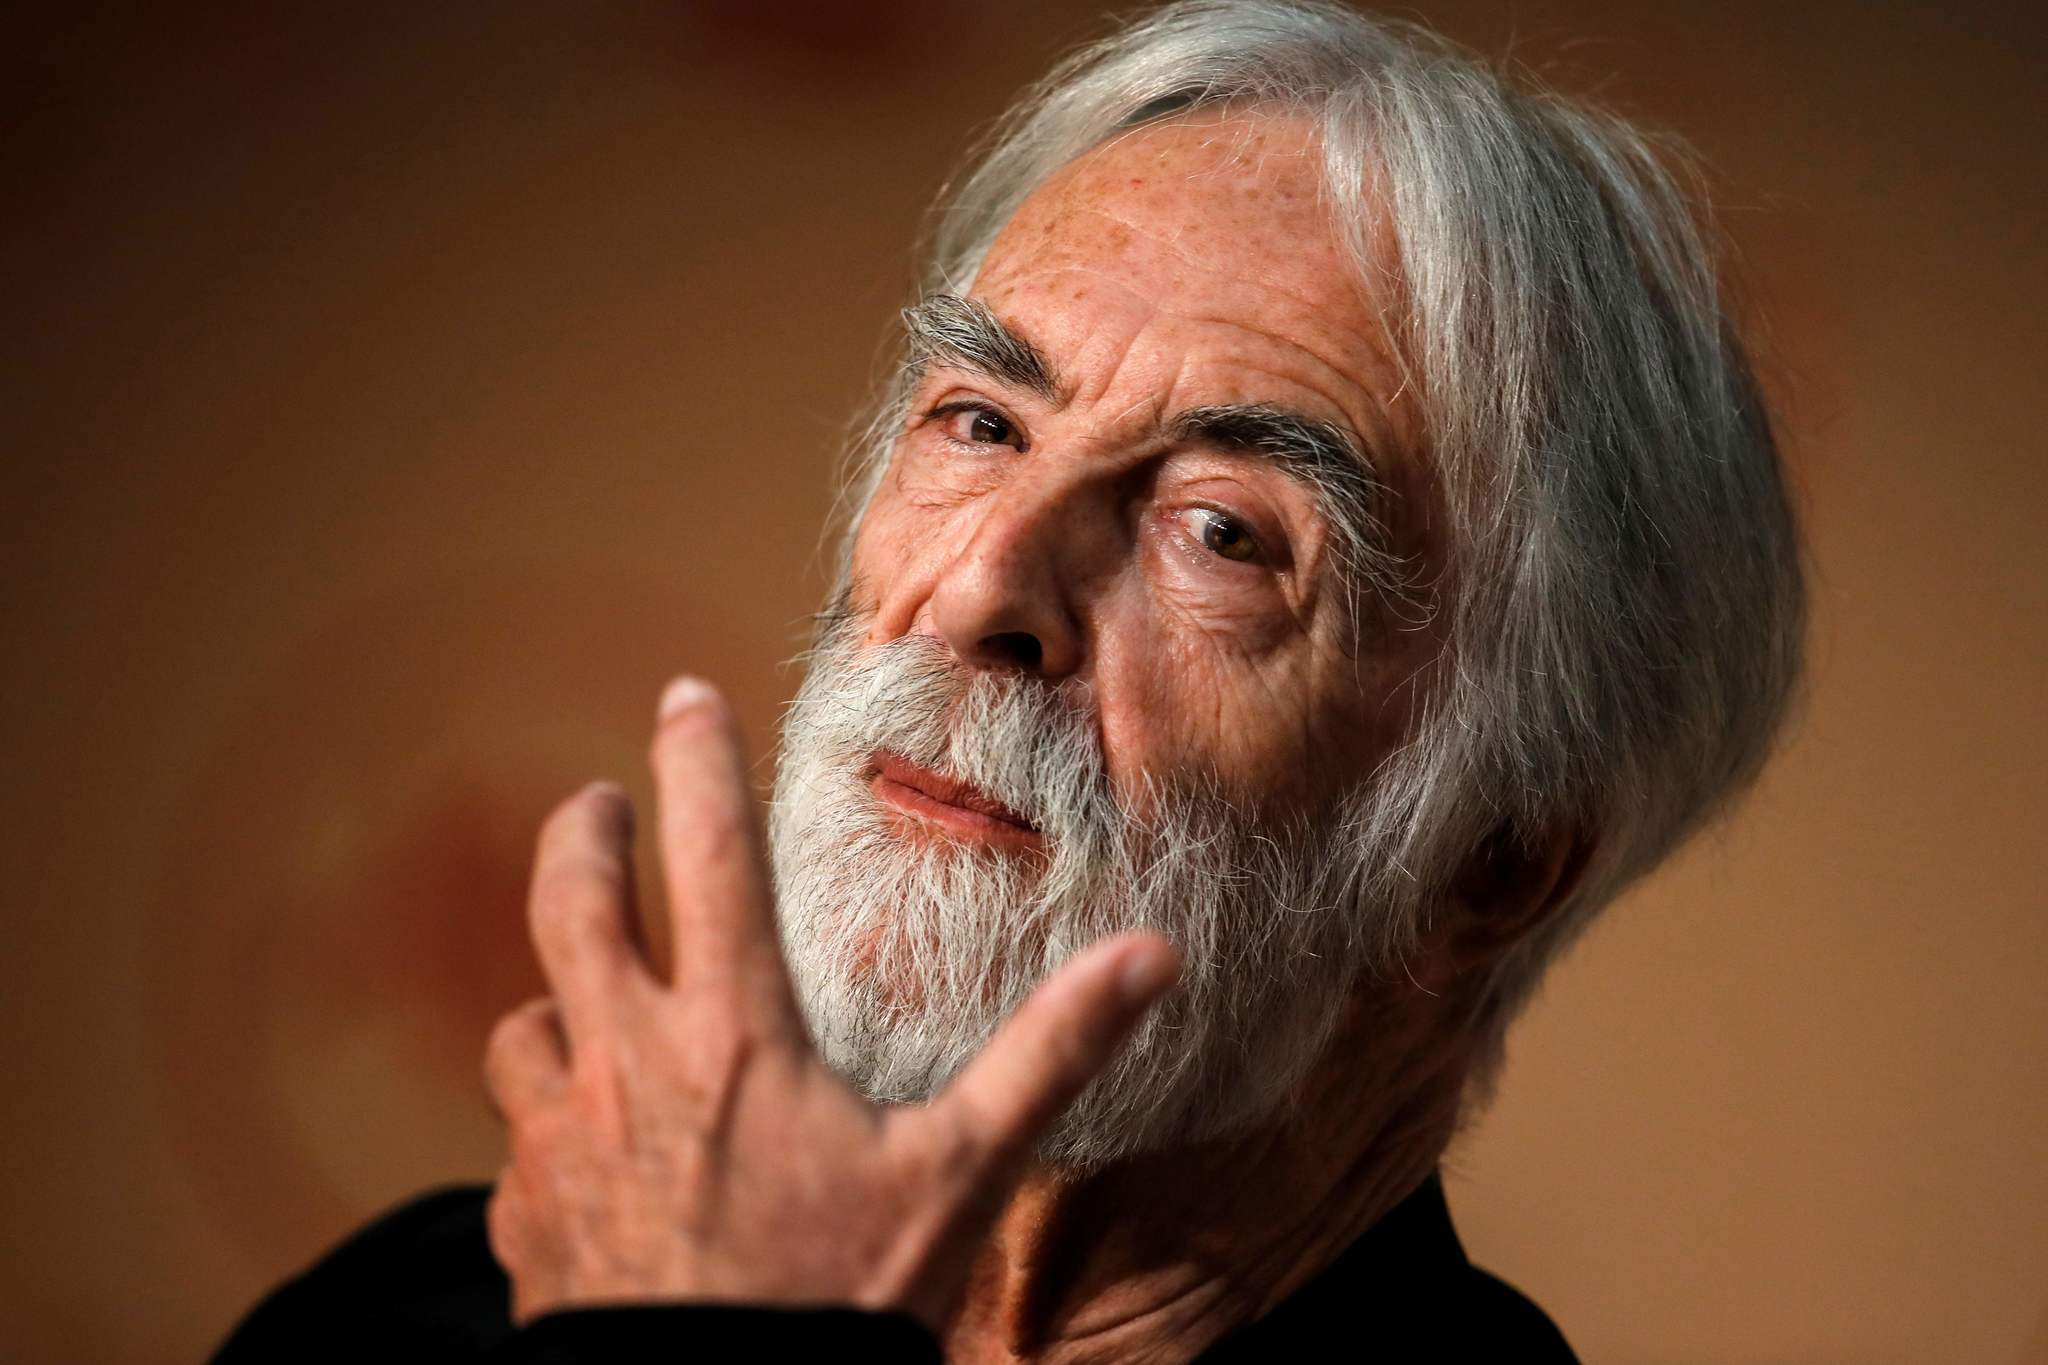 Director Michael Haneke during a press conference at the Cannes Film Festival.